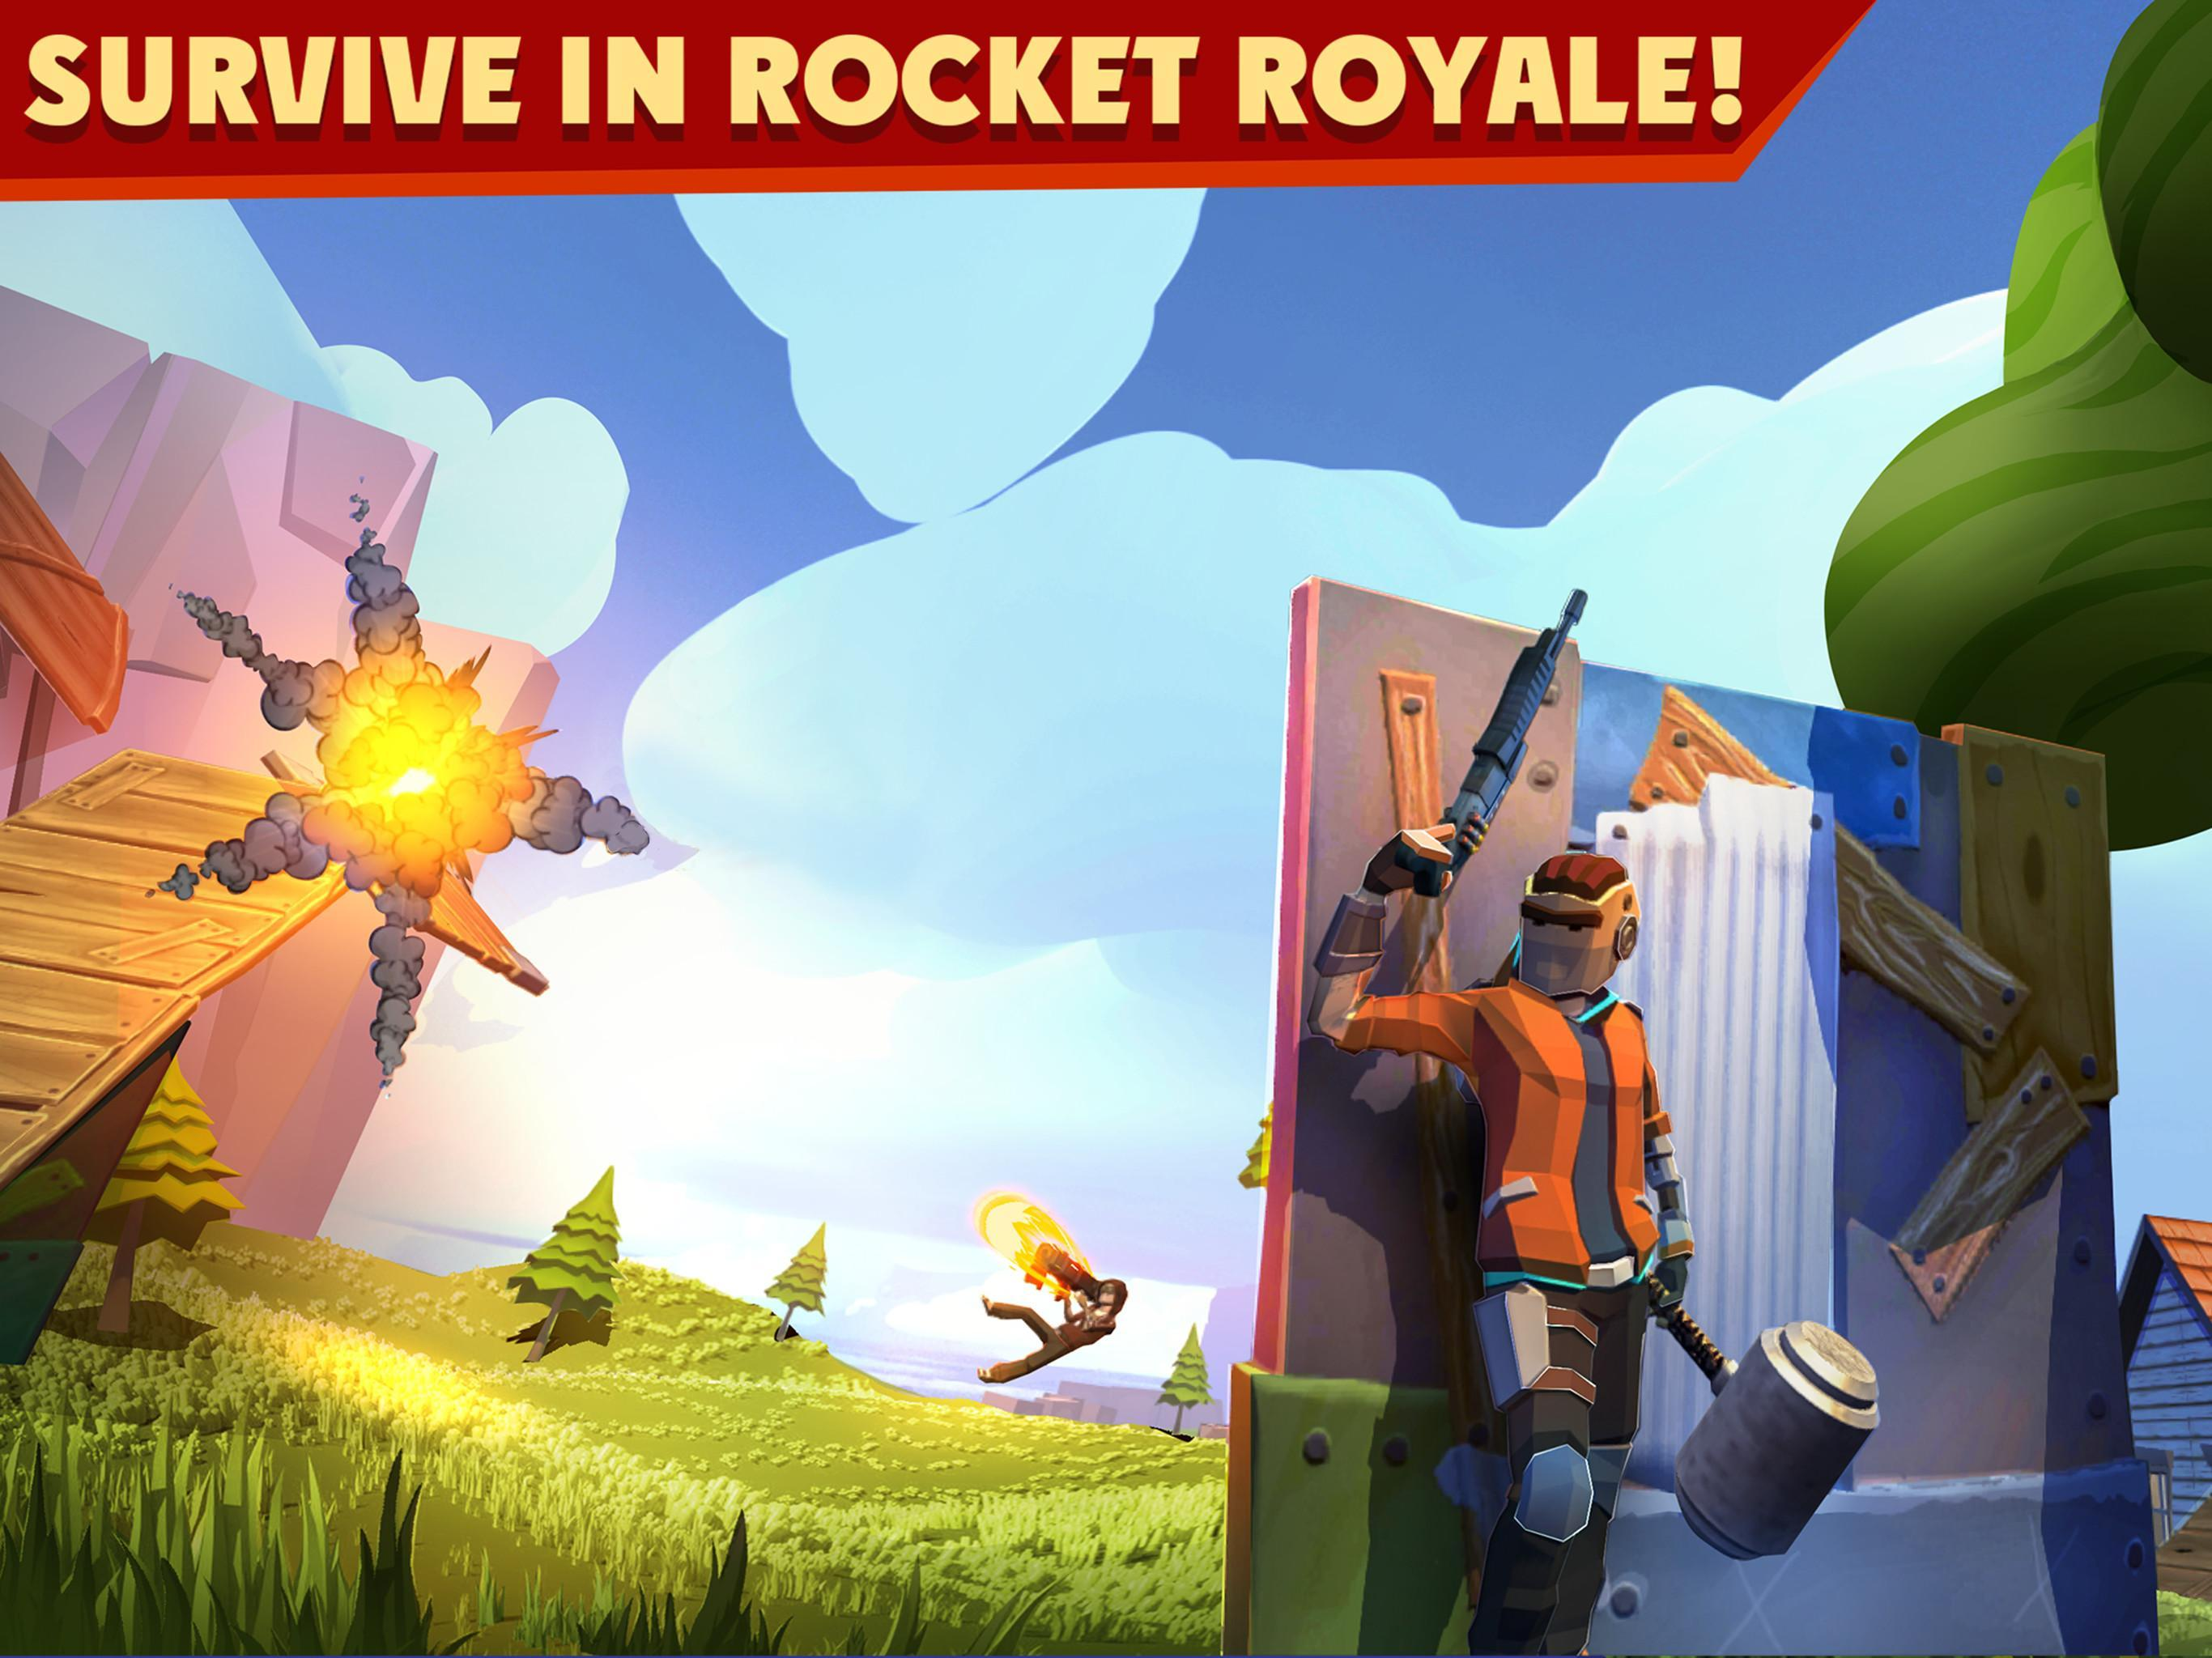 Rocket Royale For Android Apk Download - all codes for heros online roblox roblox generator glitch